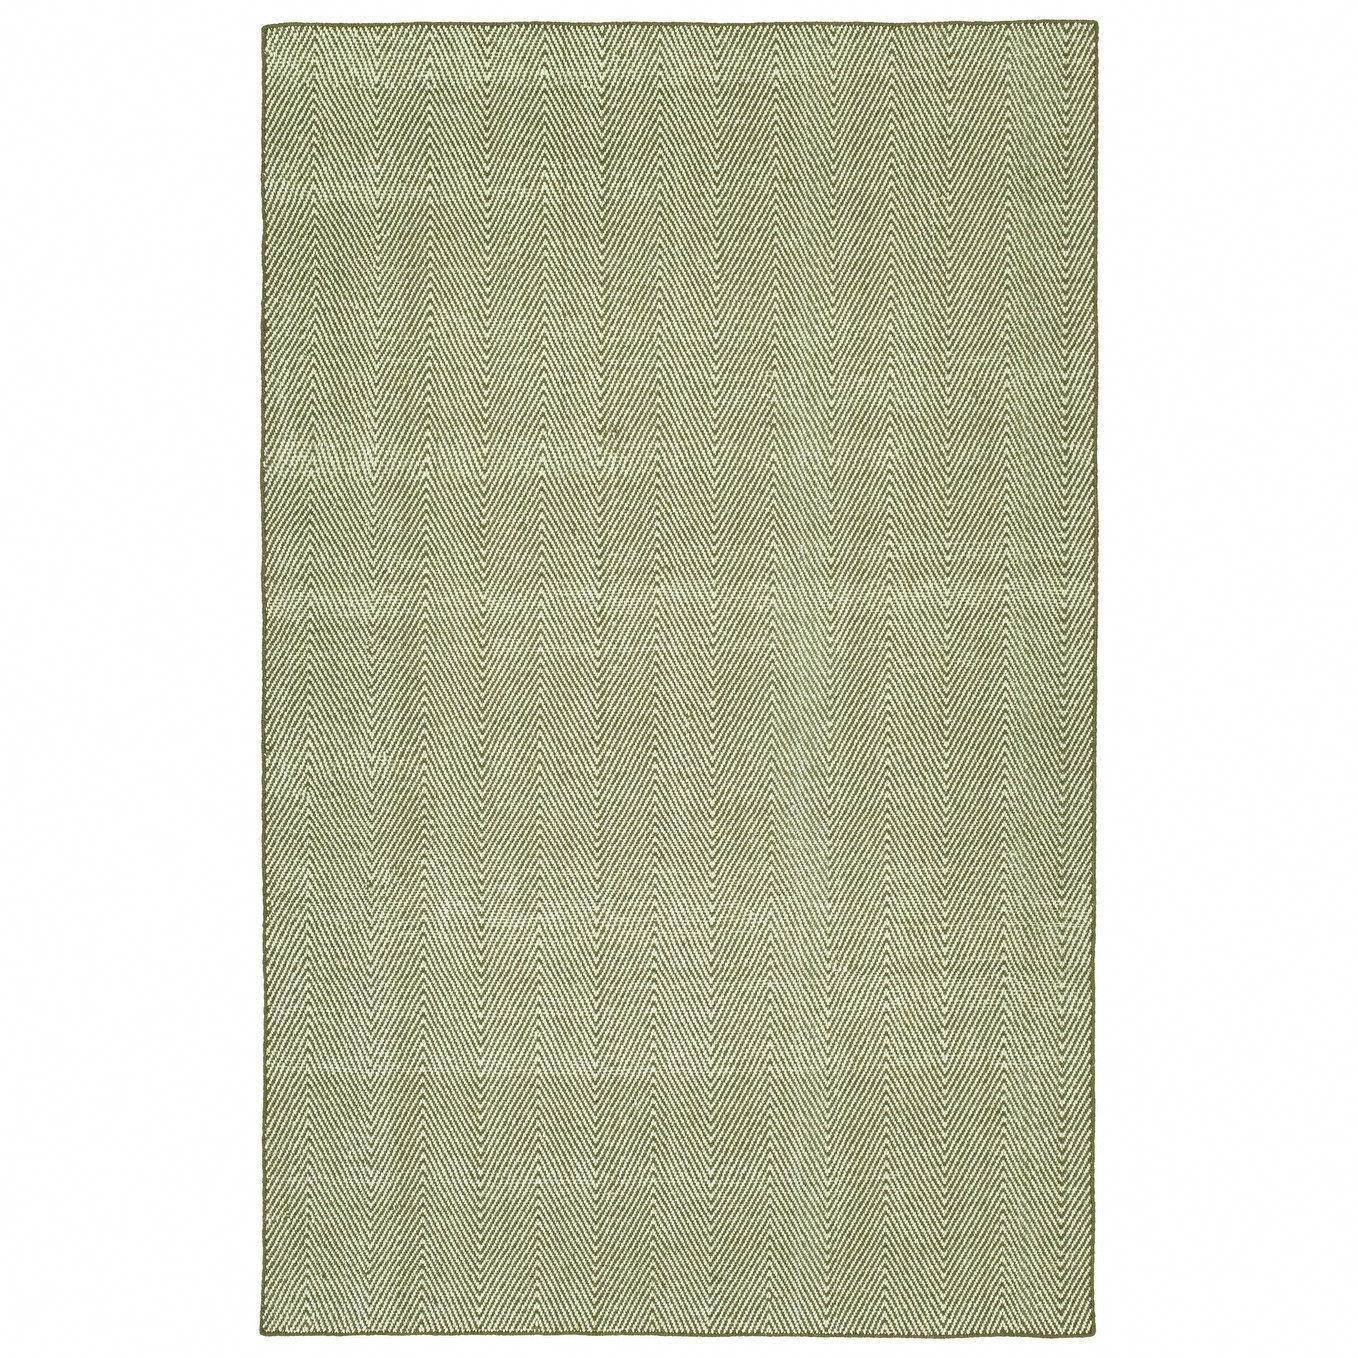 Bombay Home Indoor Outdoor Eden Chevron Olive Polyester Rug 3 X 5 Green Size 3 X 5 Runnerrugs Area Rugs Rugs Polyester Rugs